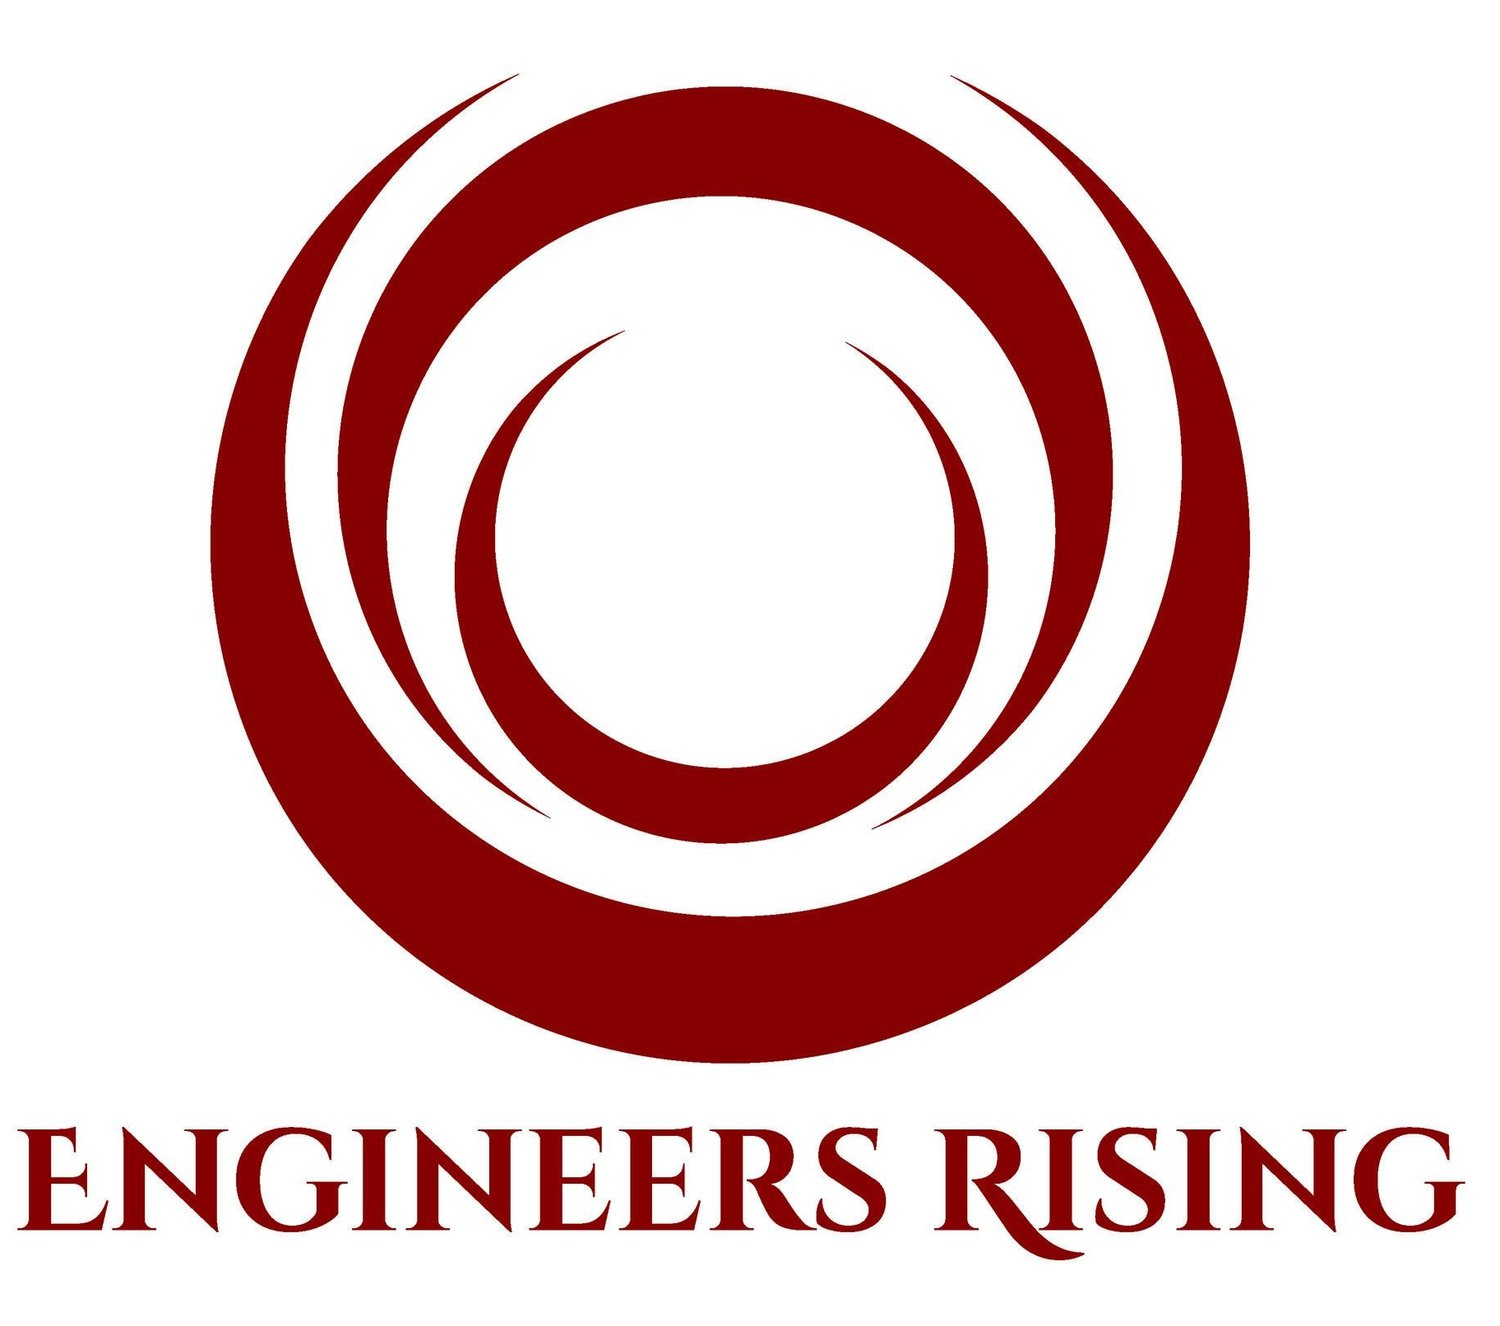 Engineers Rising LLC